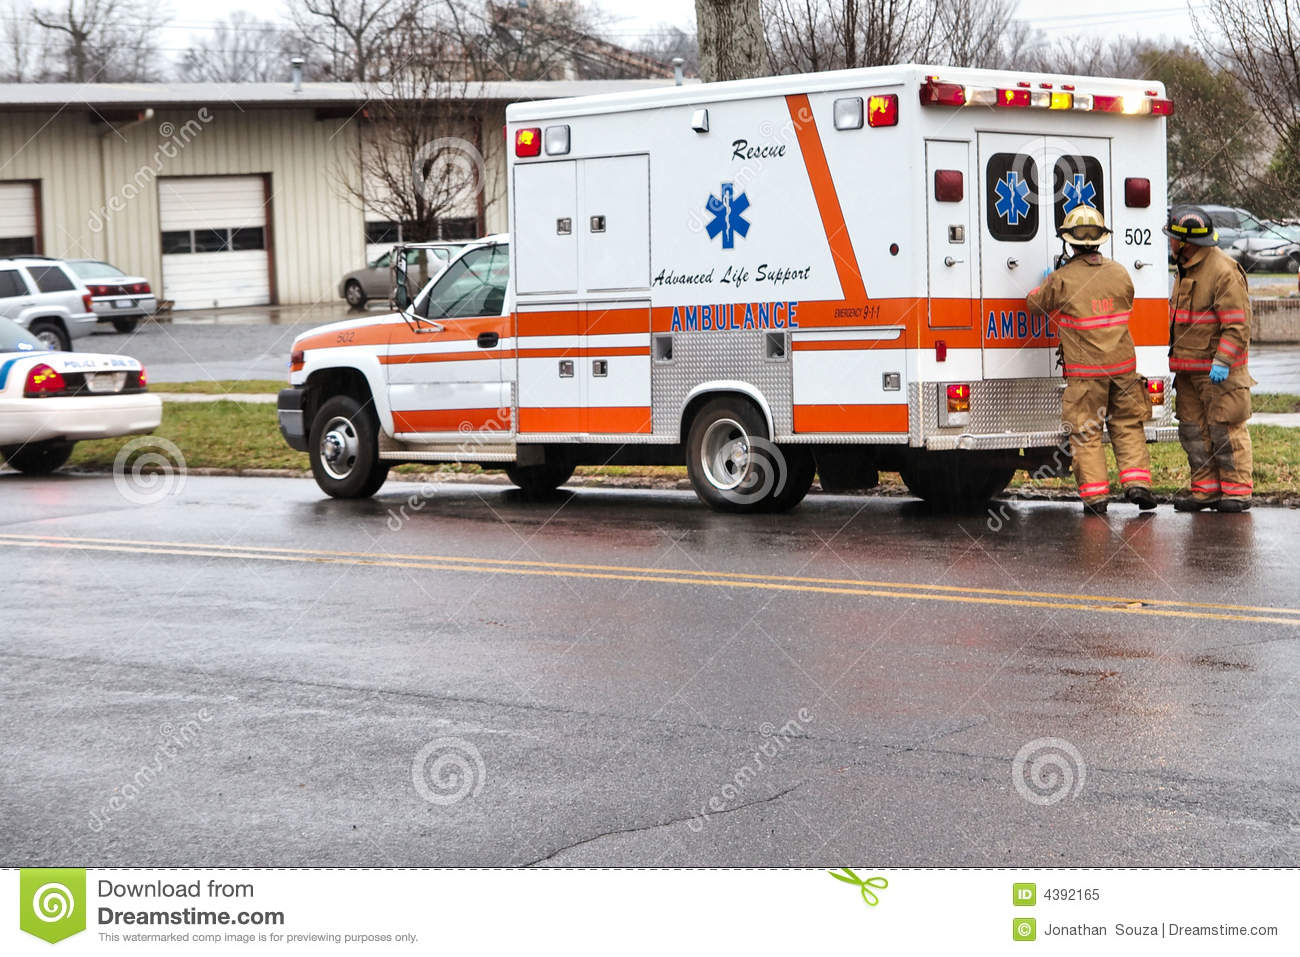 Firefighters at an ambulance.